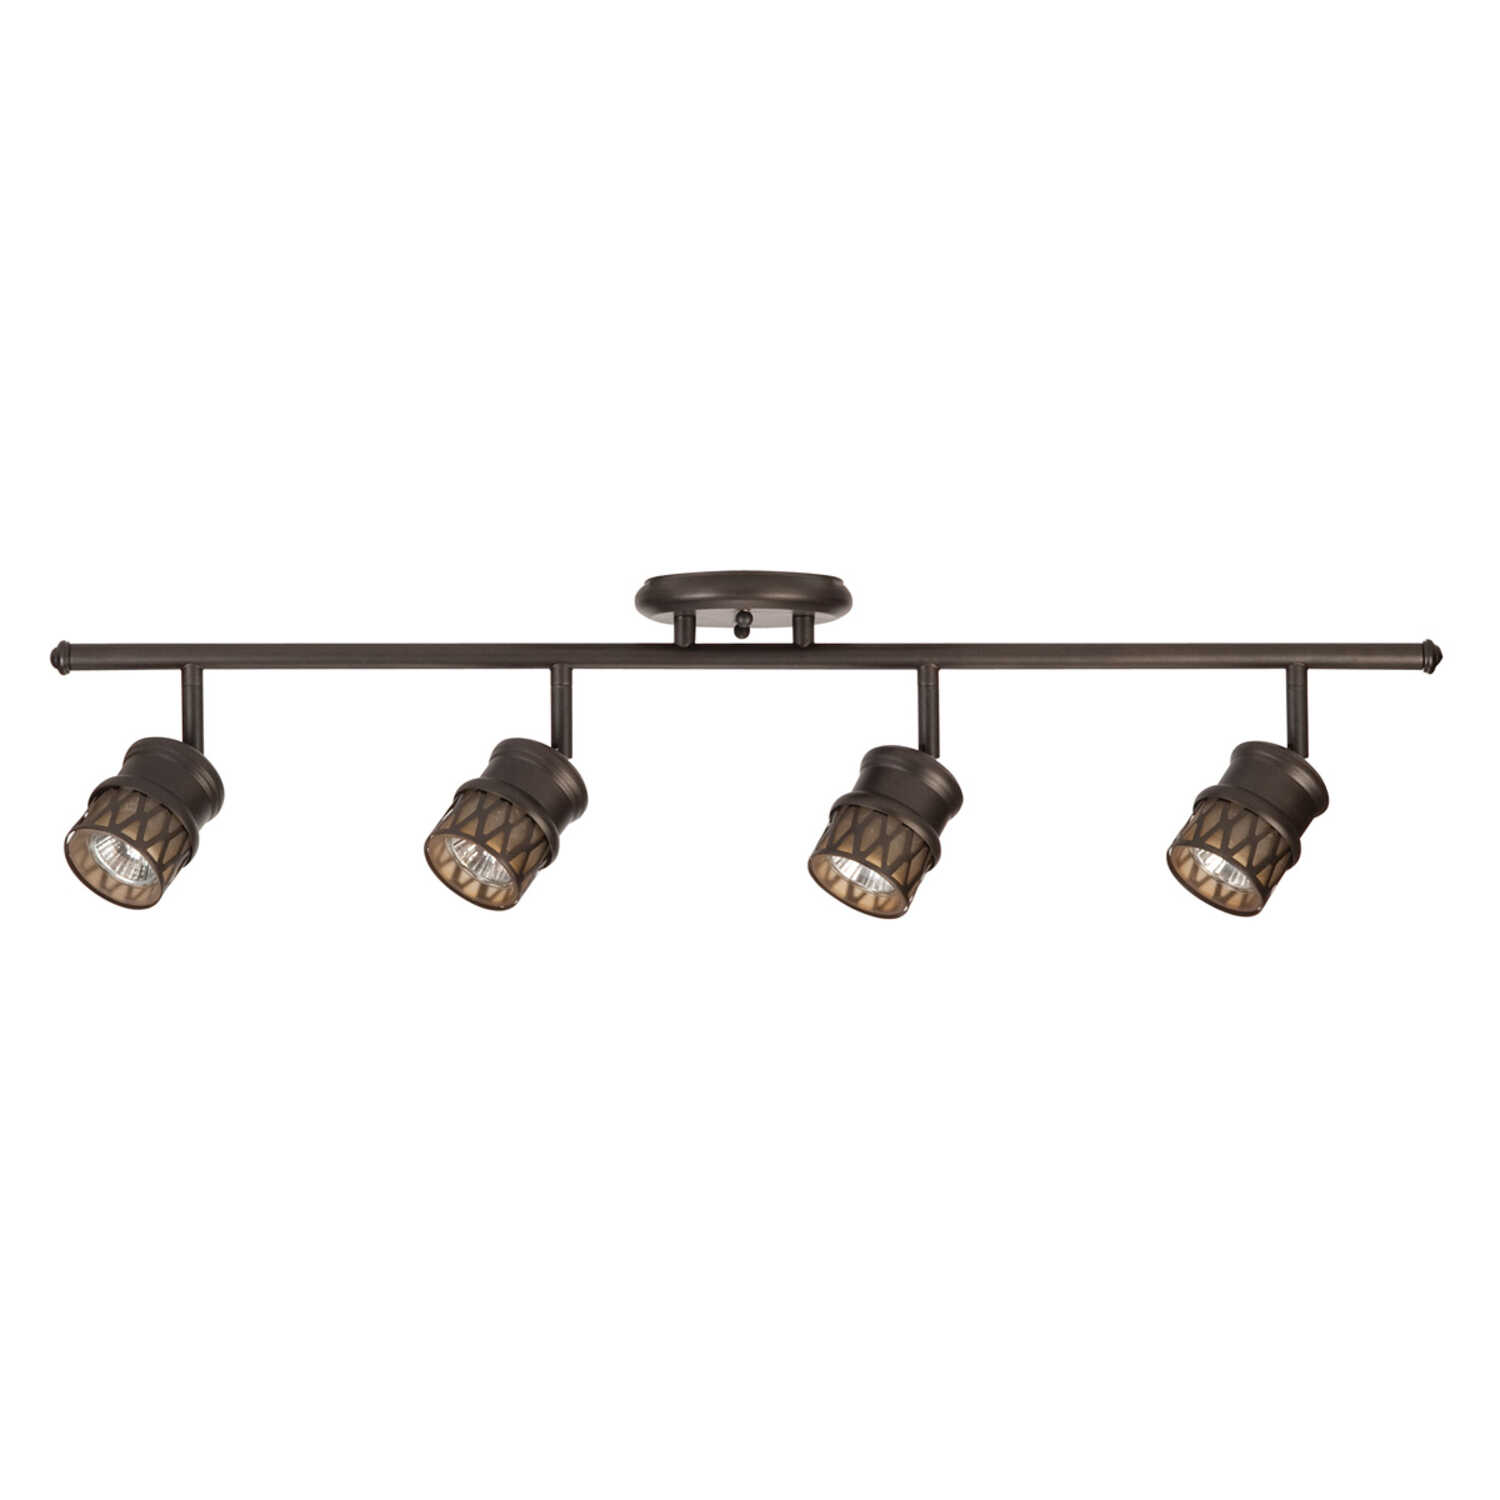 Globe  Oil Rubbed Bronze  Black  4 lights Halogen  Track Light Kit